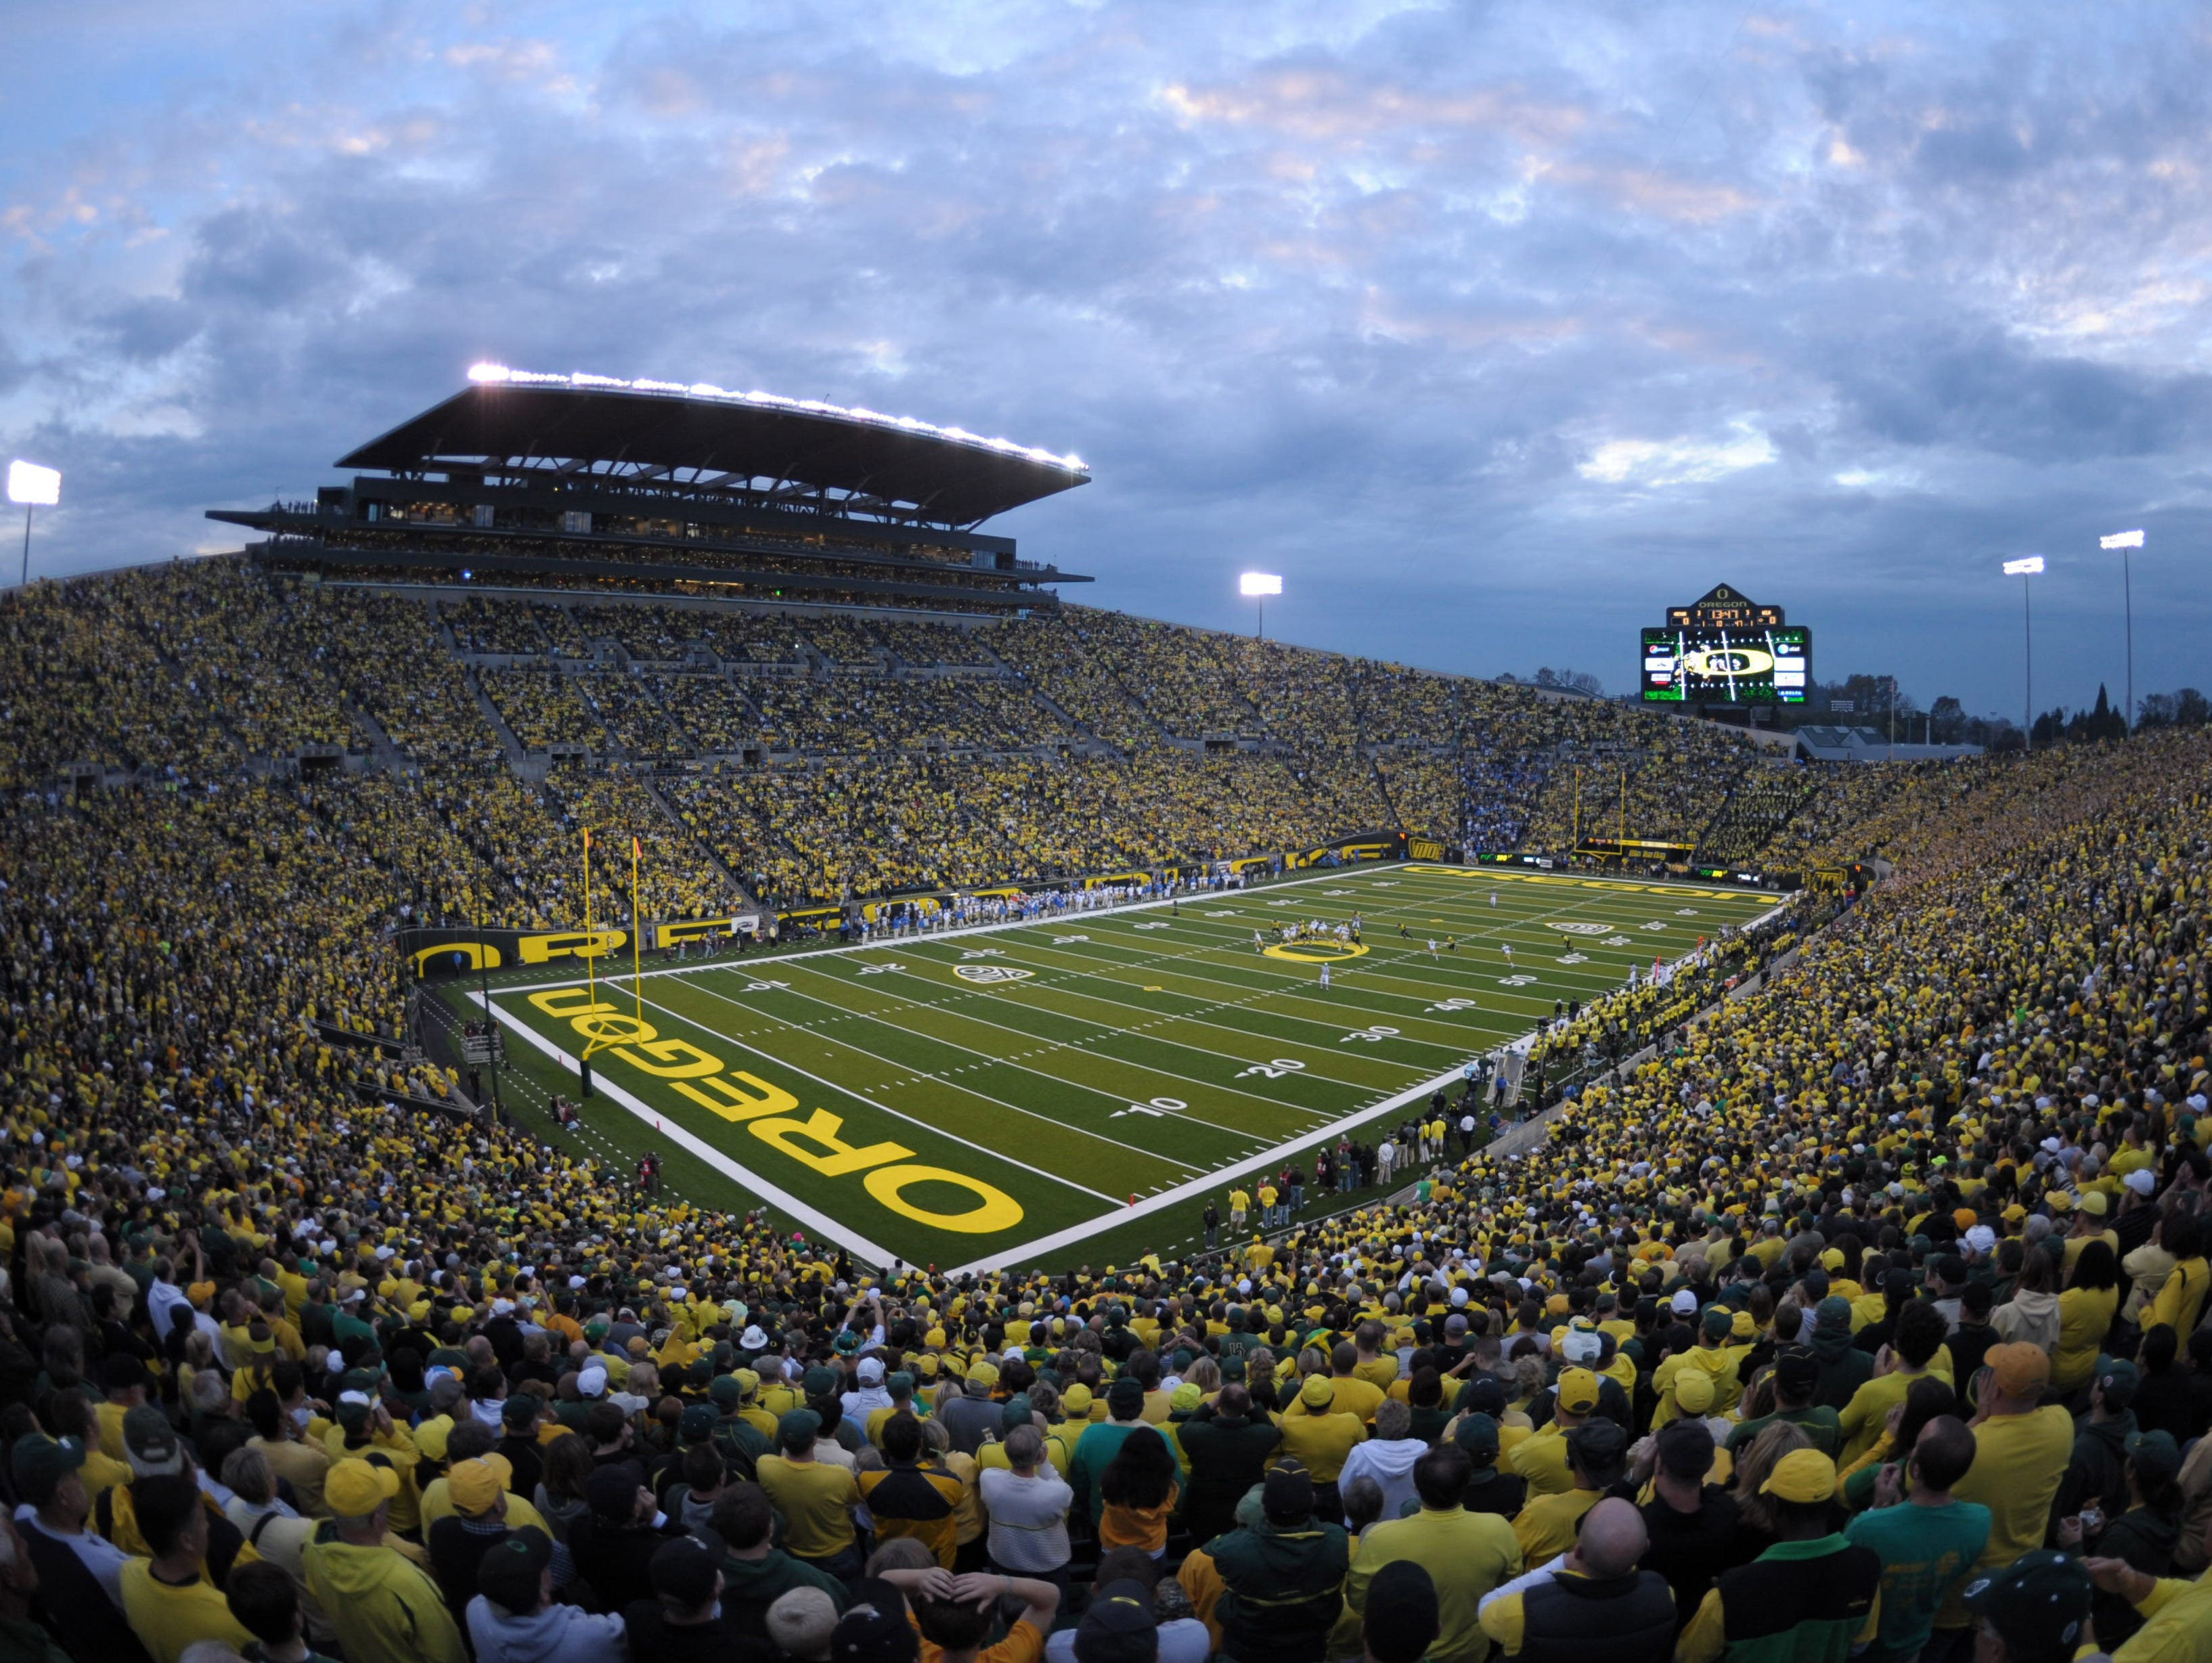 Autzen Stadium, Oregon: The unique layout puts the stands right on top of the sunken field, which traps the uproar inside the stadium, making life difficult for the visitors